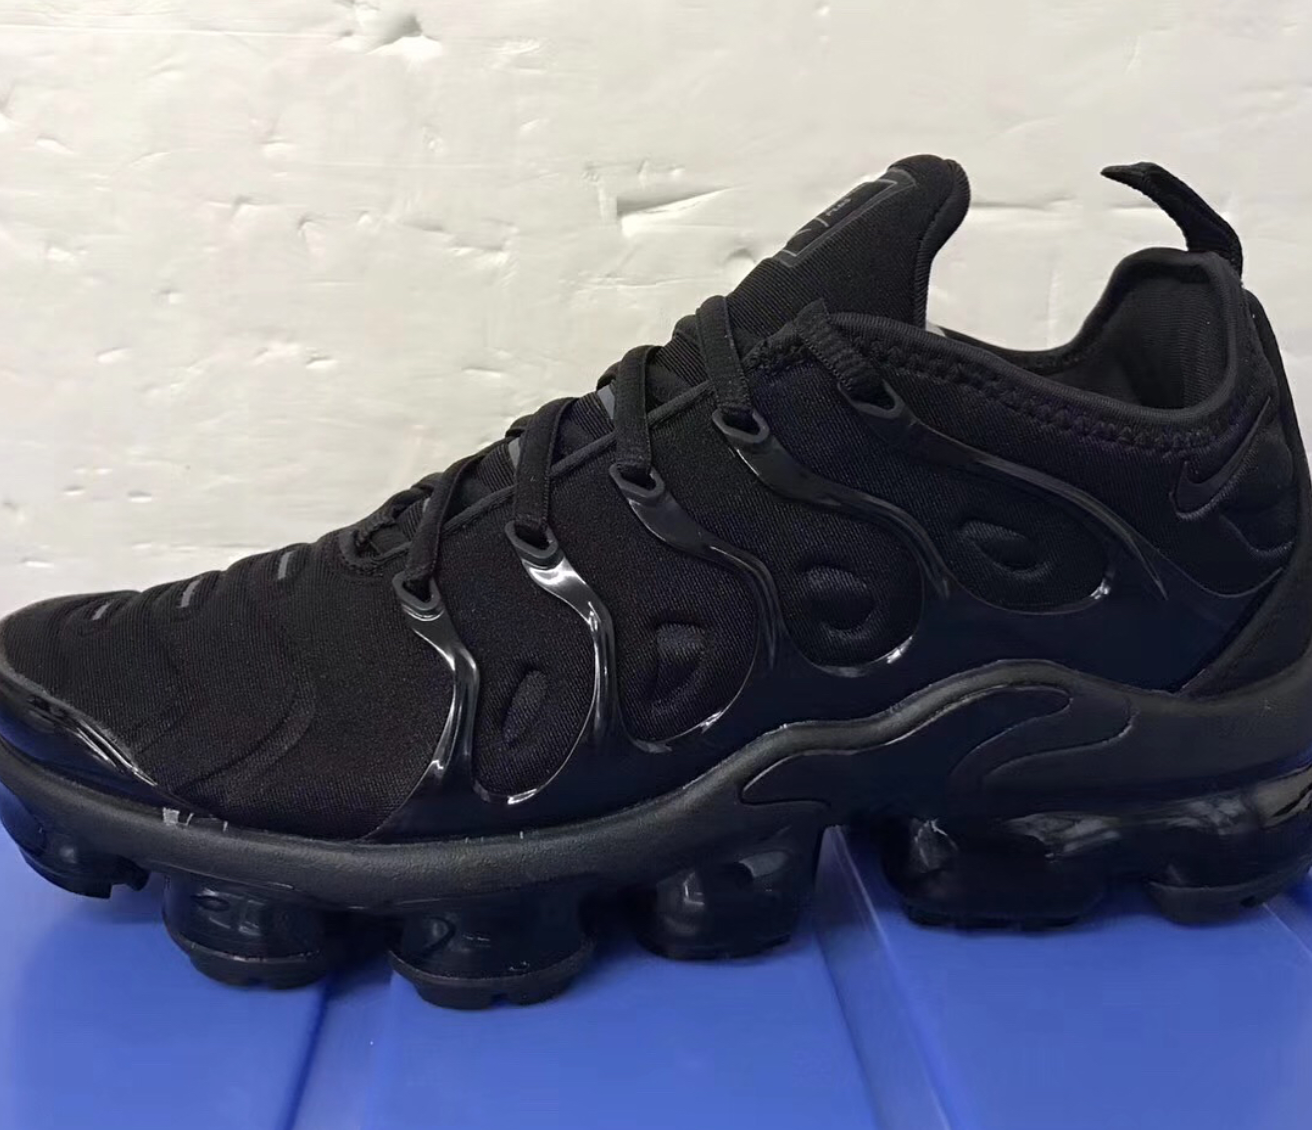 buy online 9e070 a8700 A Better Look at the Nike Air VaporMax Plus Hybrid - WearTesters